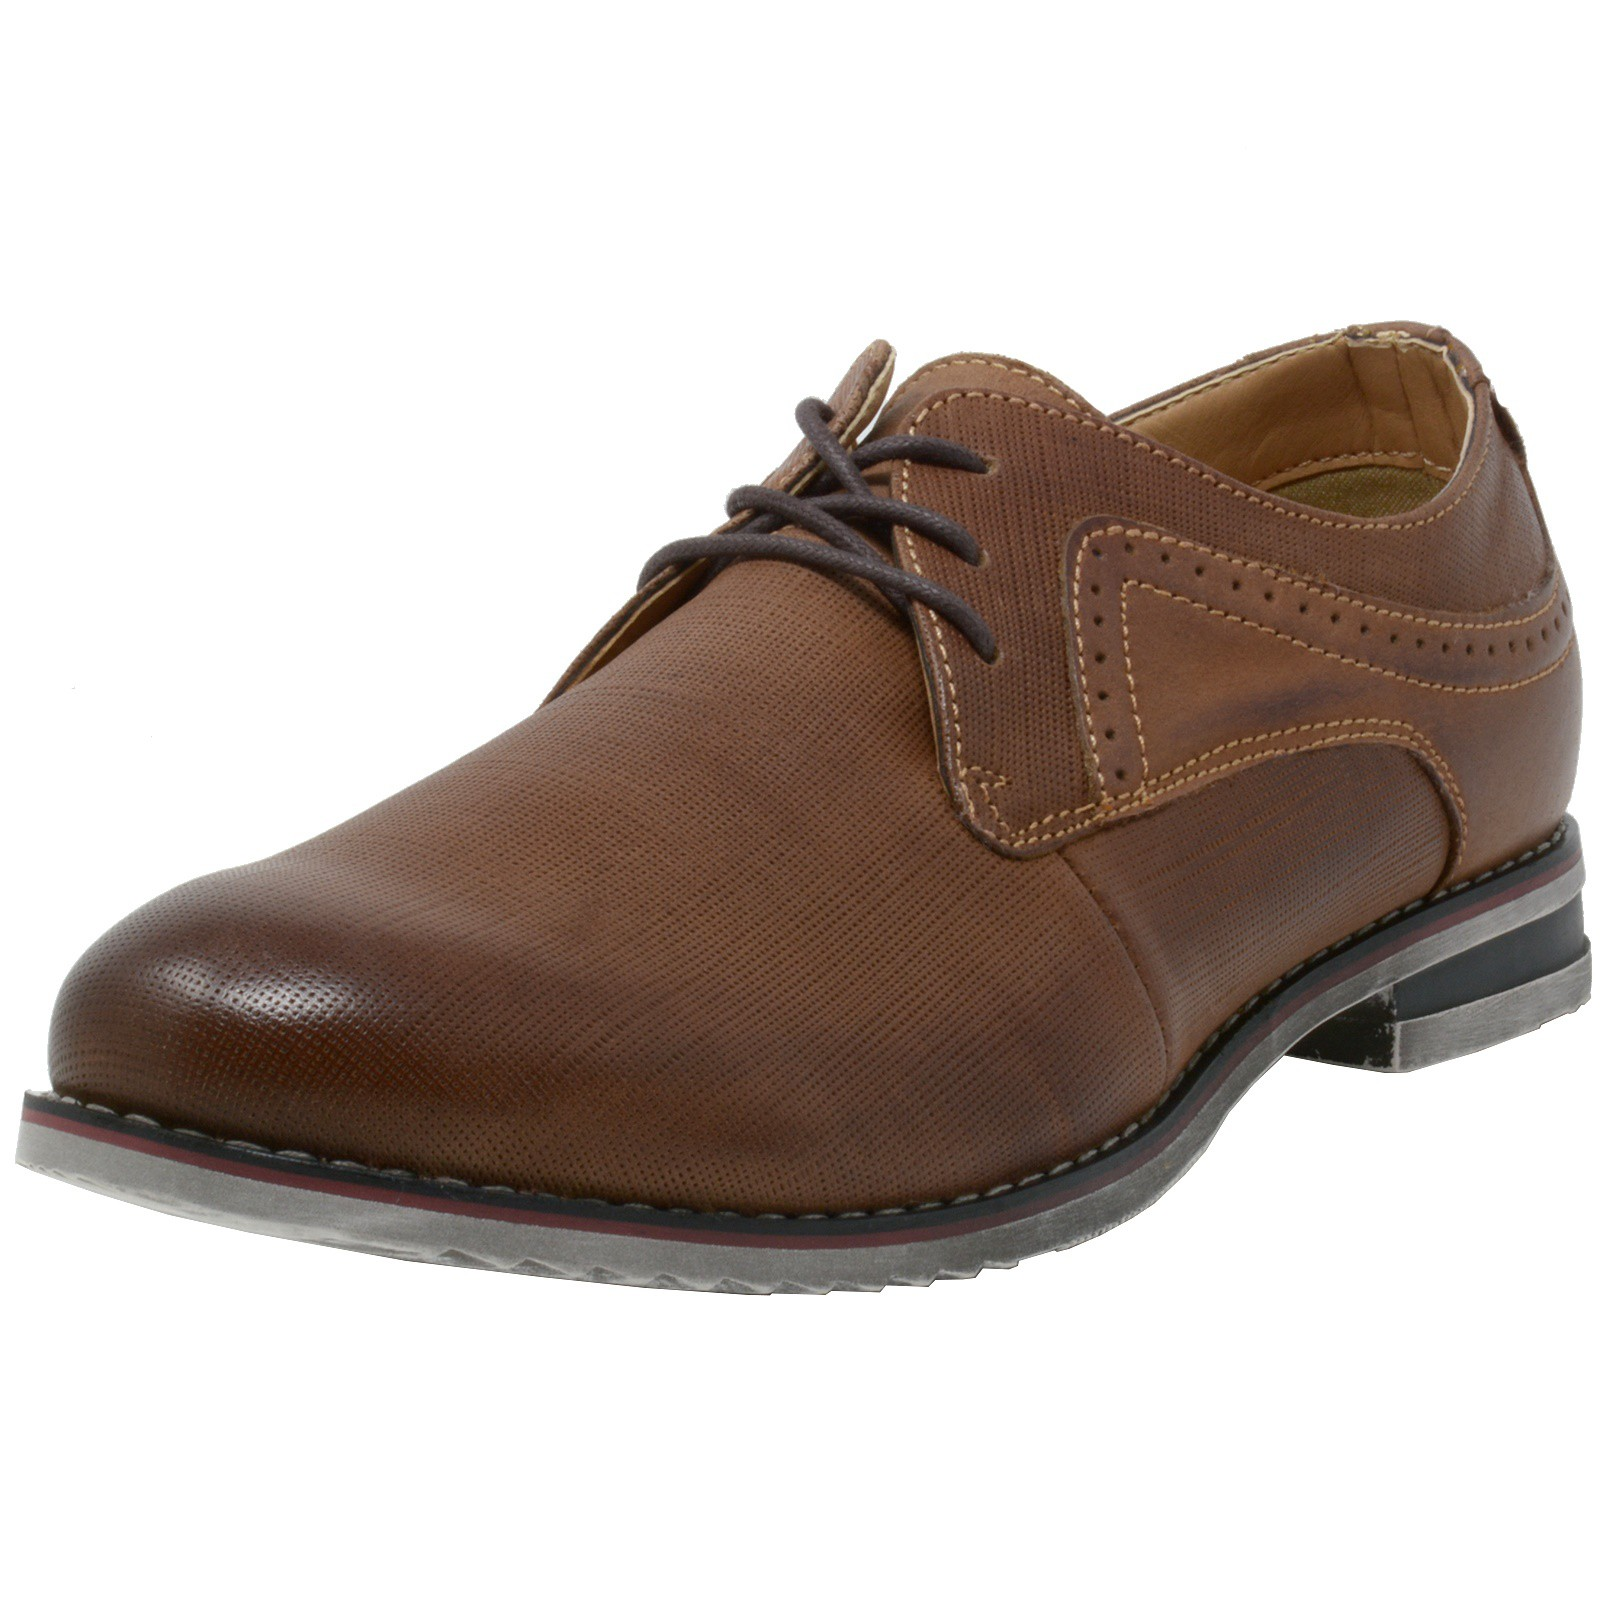 Double-Diamond-by-Alpine-Swiss-Mens-Saffiano-Leather-Lace-Up-Oxford-Dress-Shoes thumbnail 22